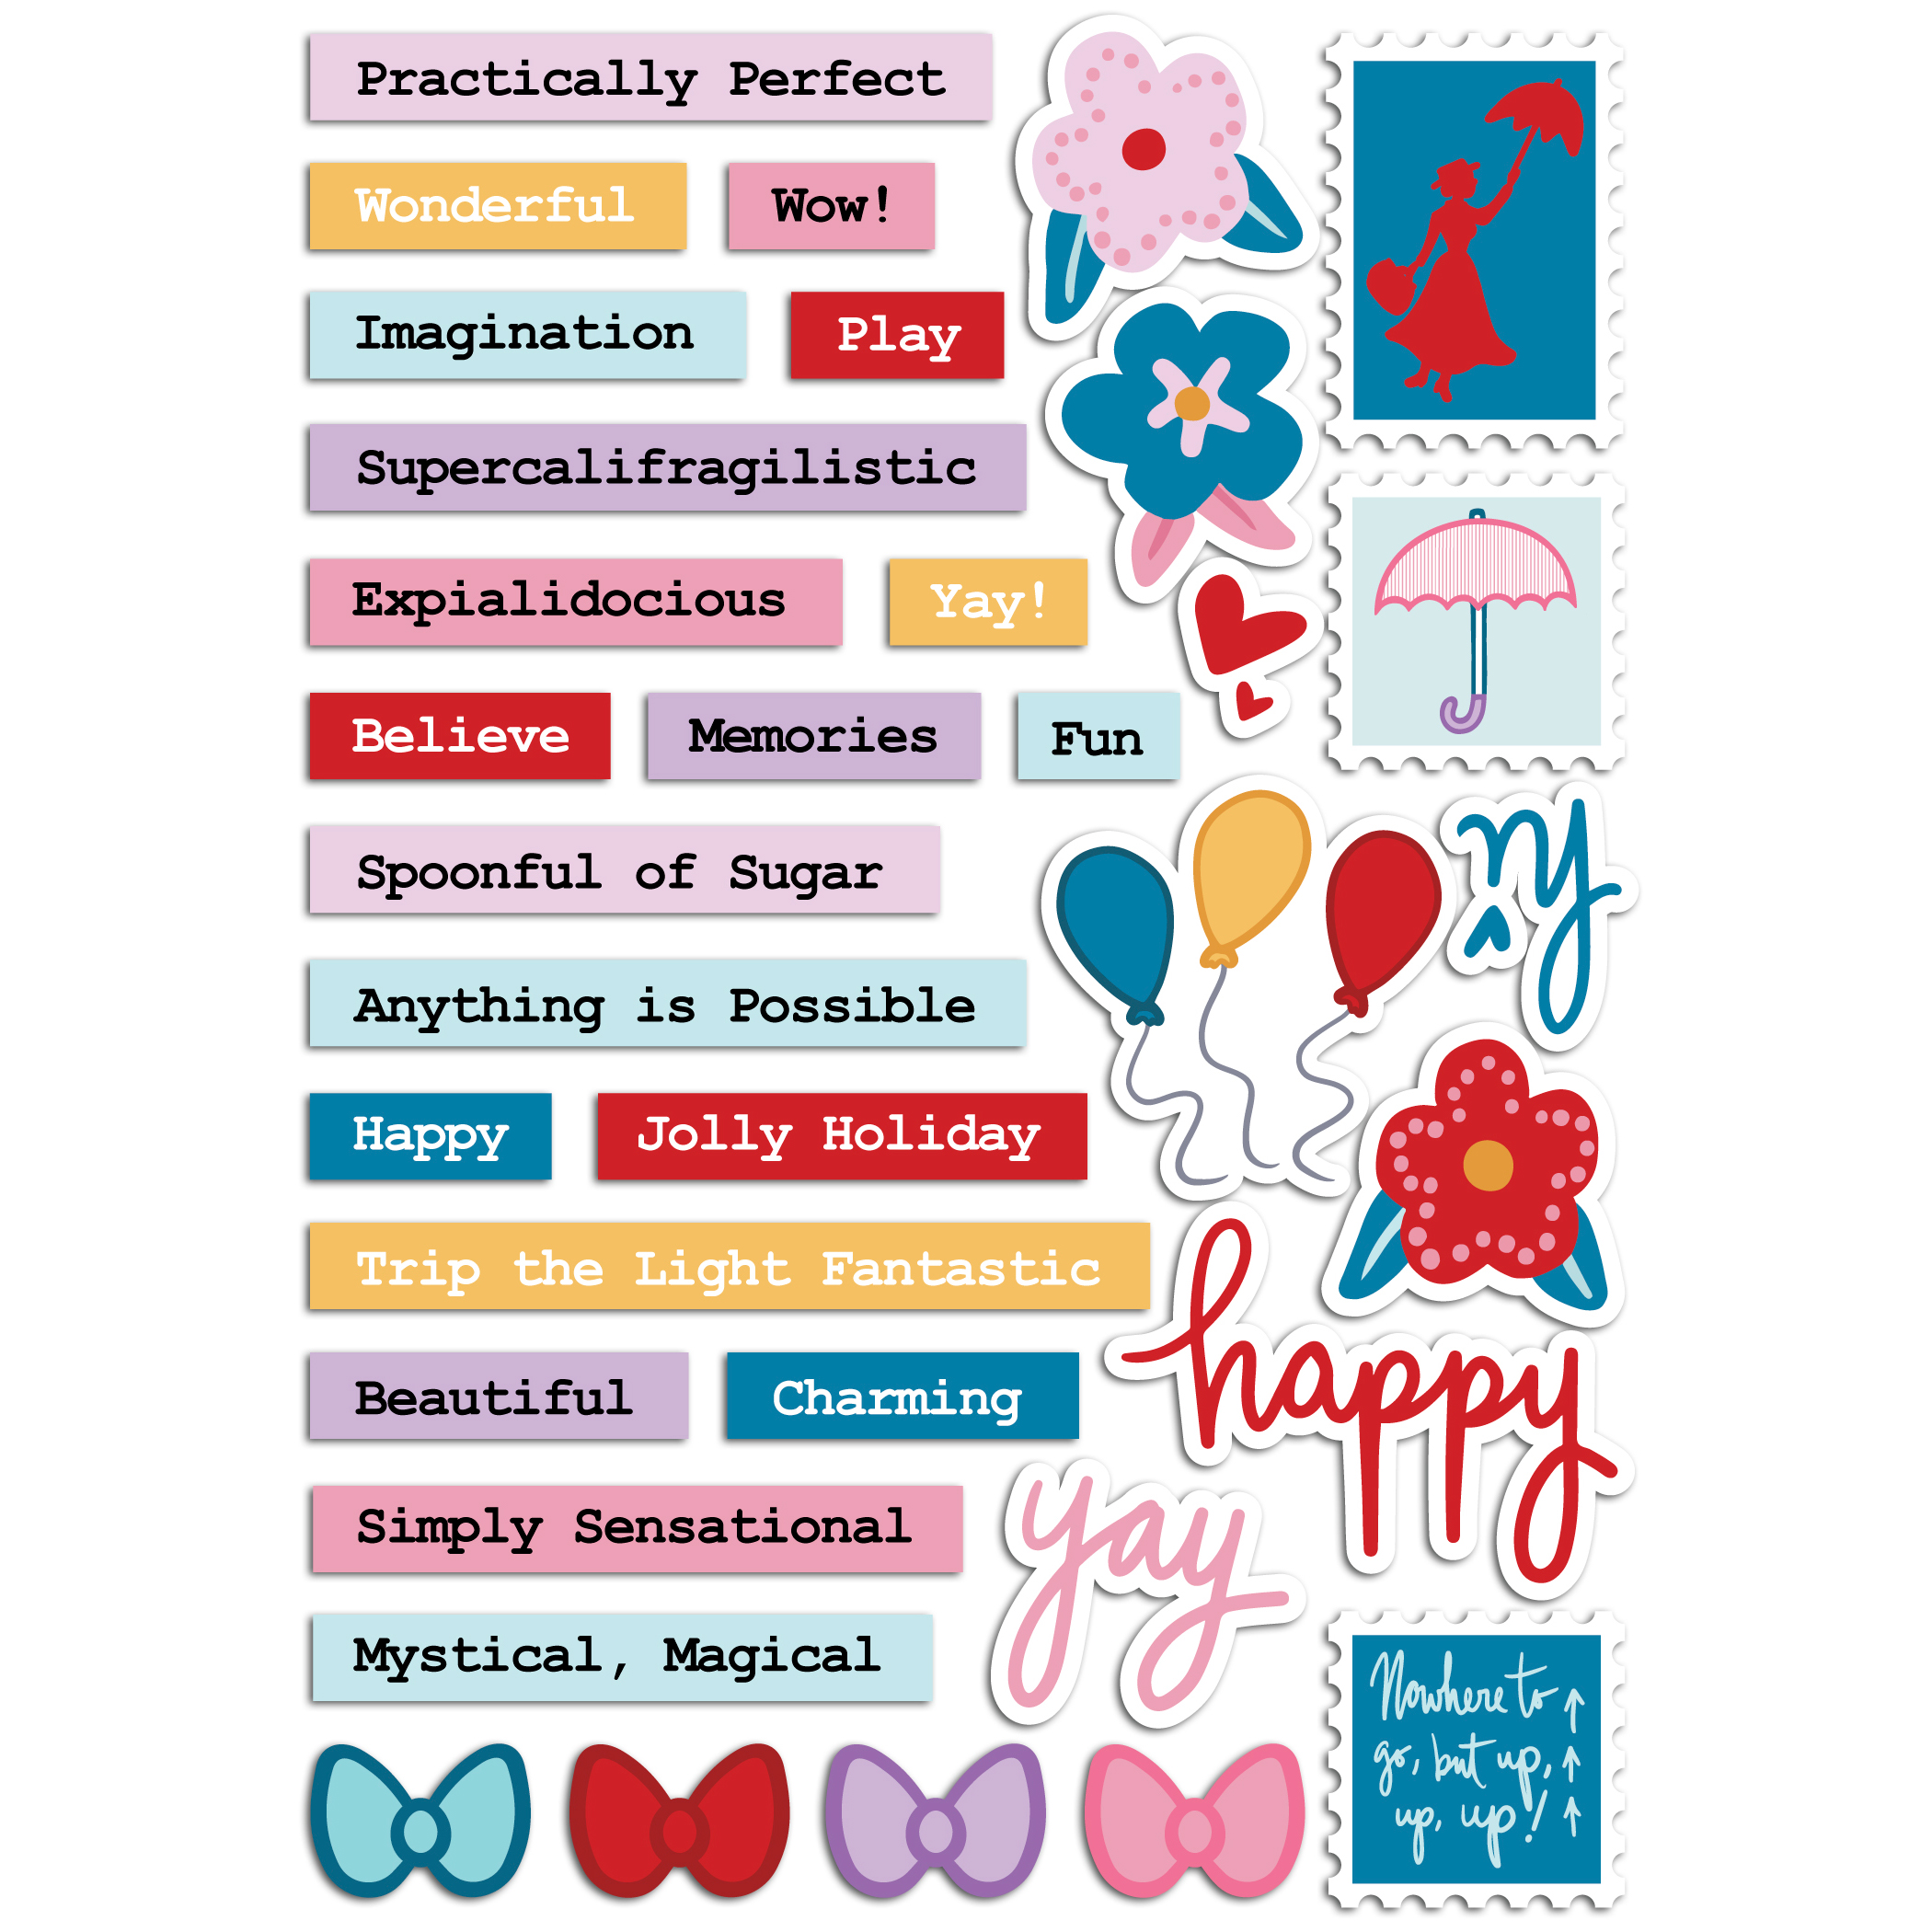 Practically Perfect - Sticker Sheet with shadows square.jpg